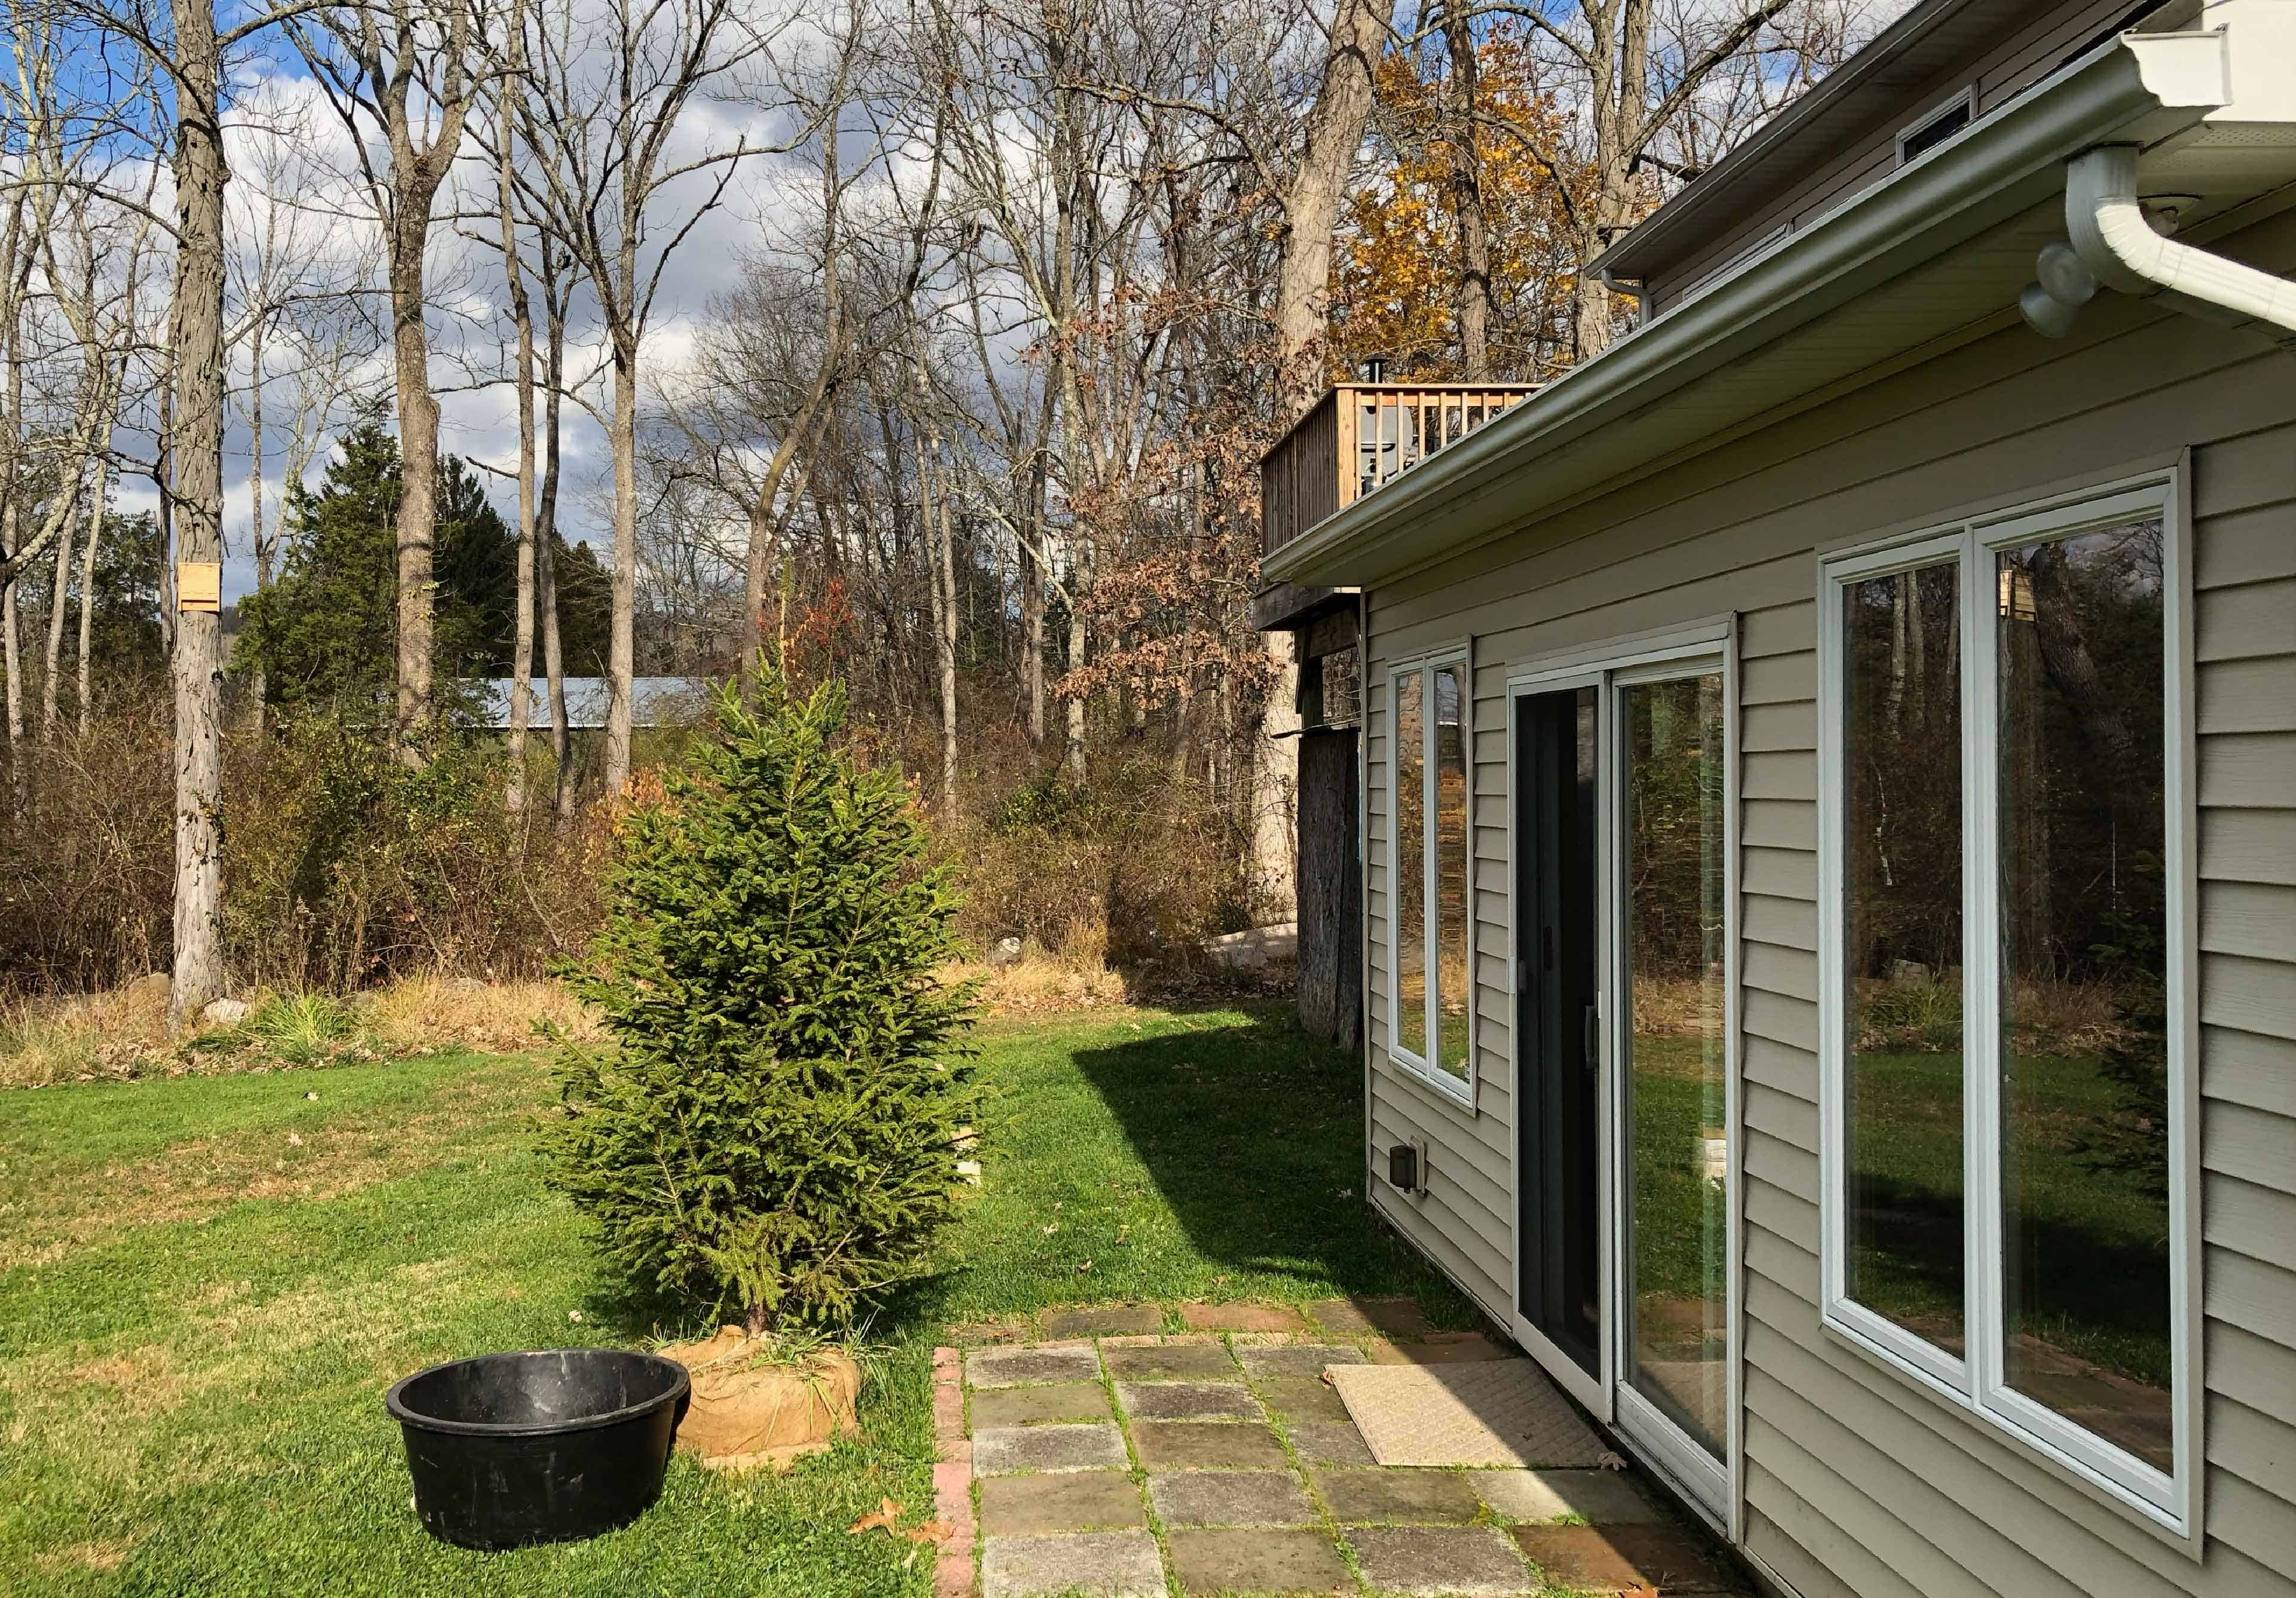 Plant  your root ball Christmas tree outside after the holidays have passed.